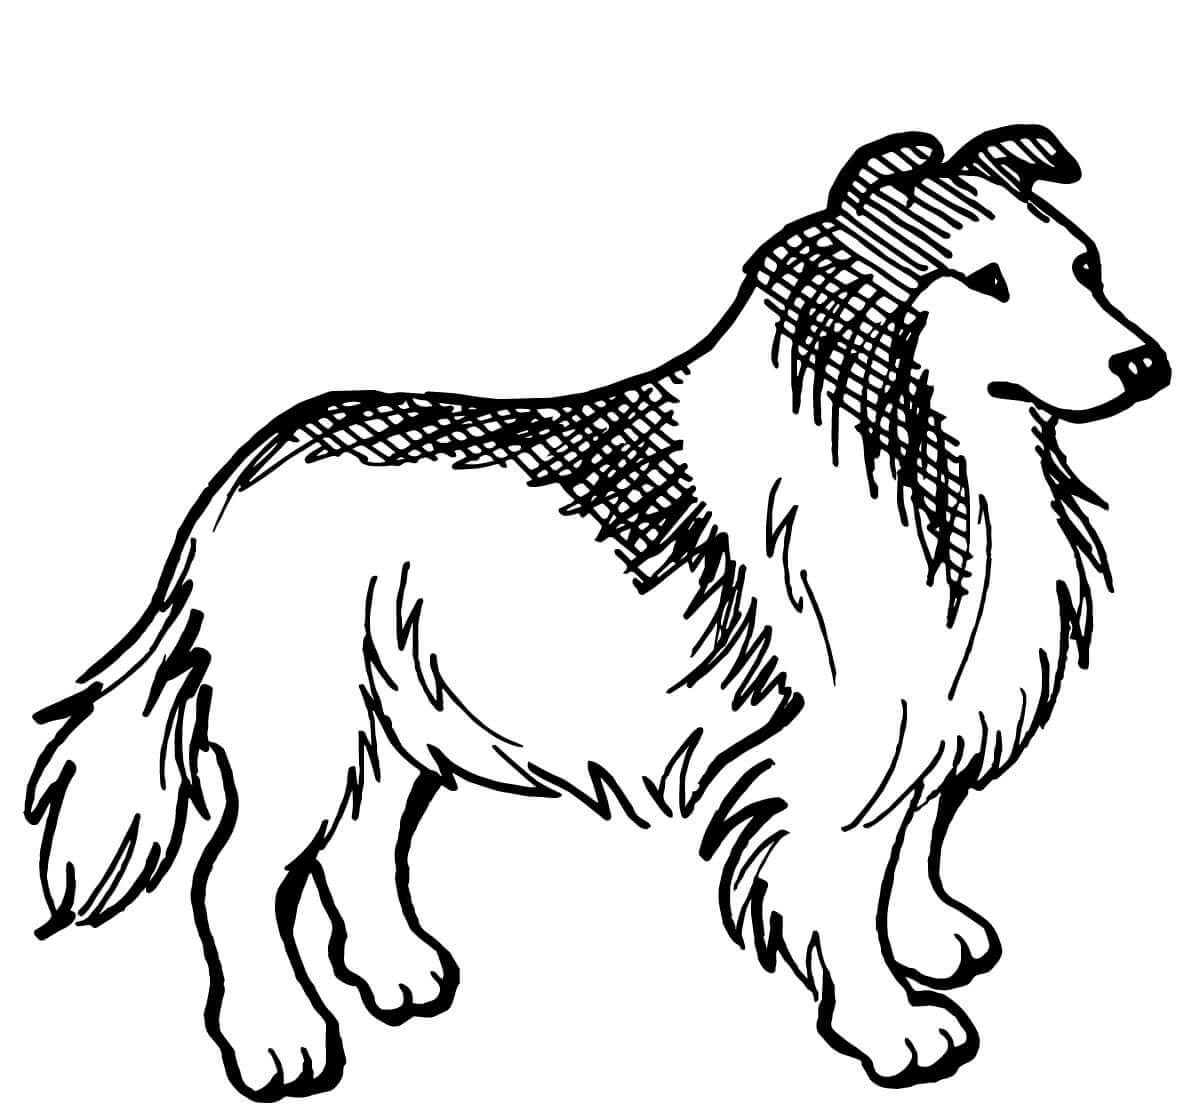 Rough Collie black and white